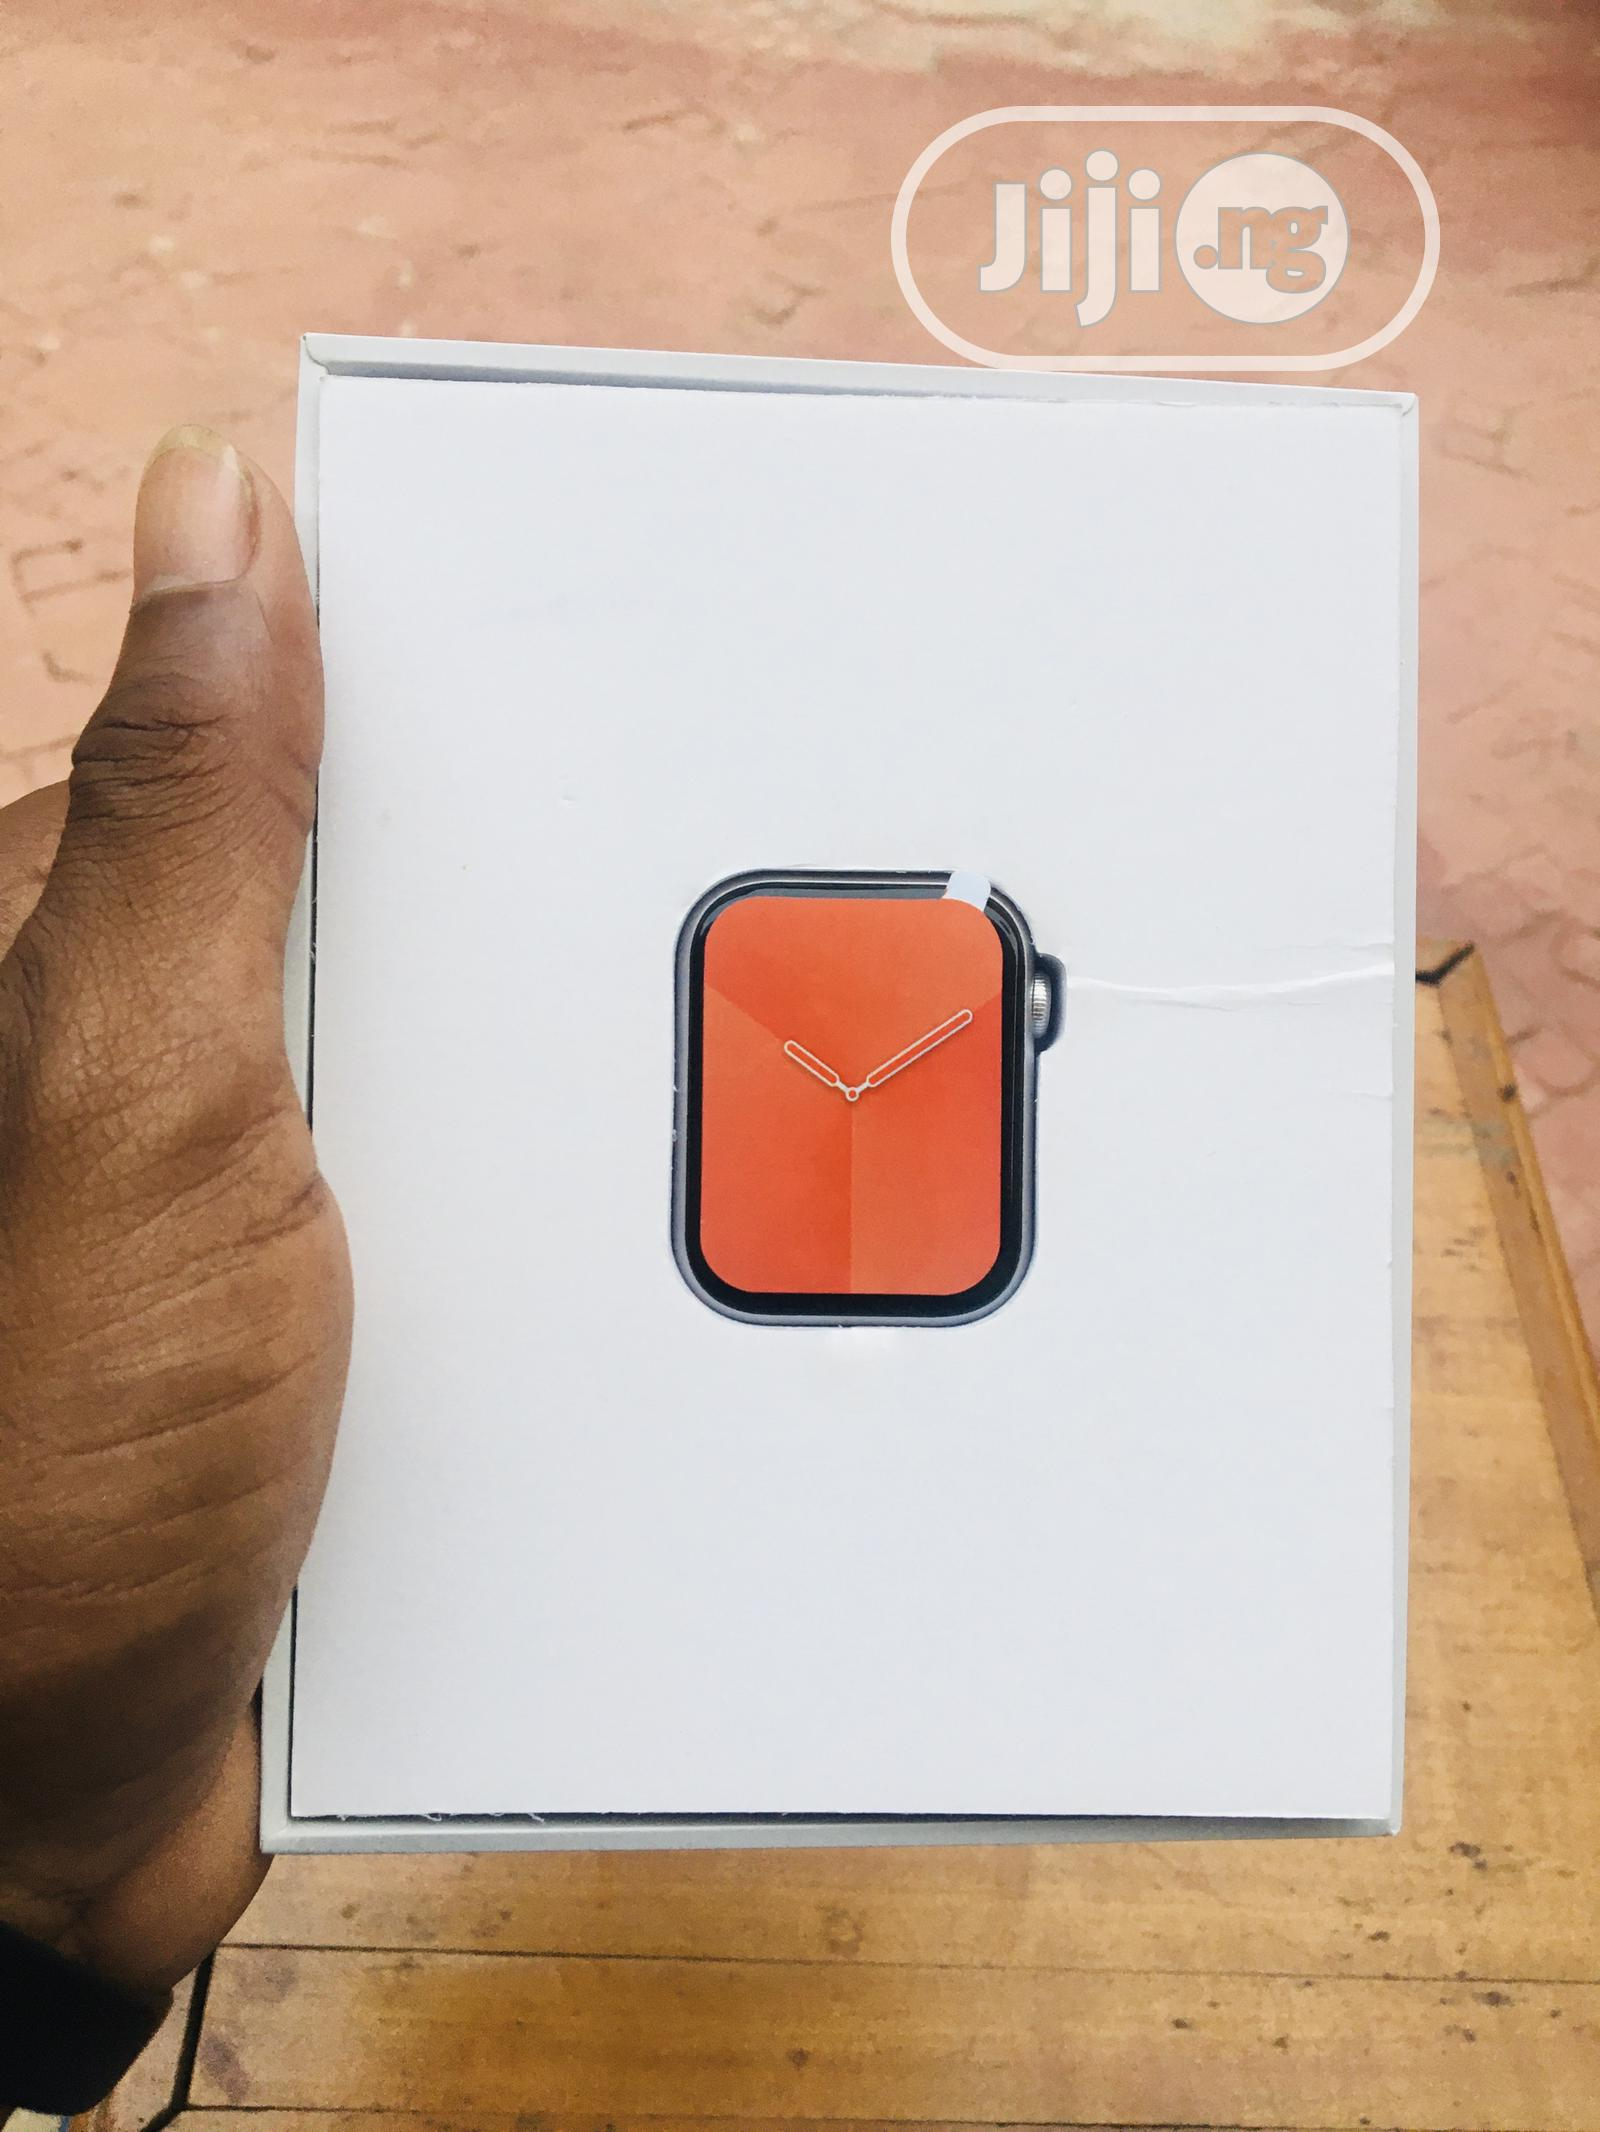 Smartwatch 6 (Fk 98) | Smart Watches & Trackers for sale in Ikeja, Lagos State, Nigeria